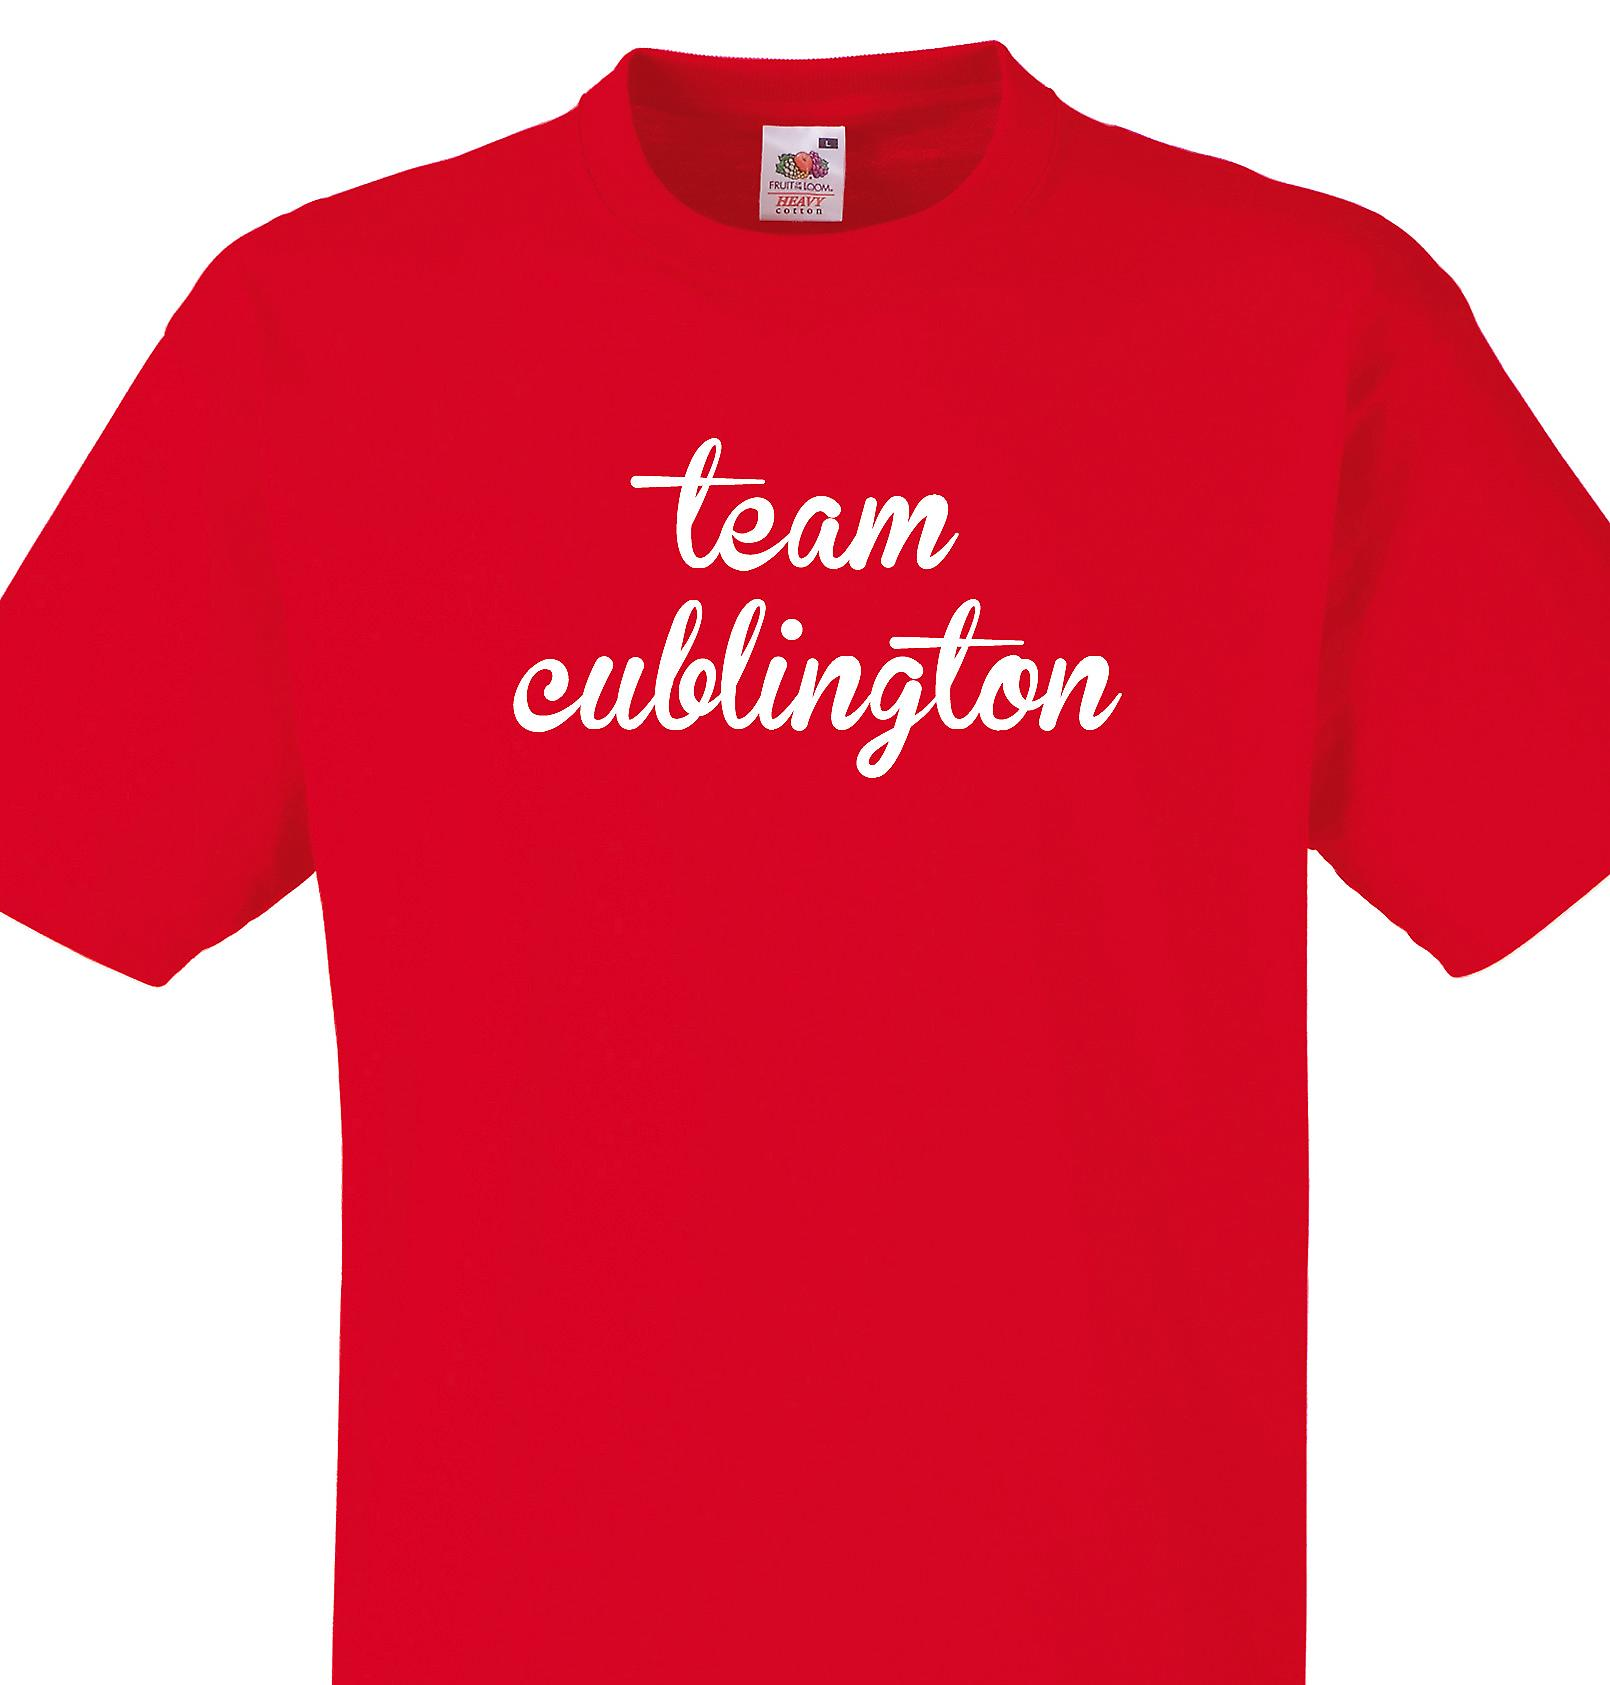 Team Cublington Red T shirt